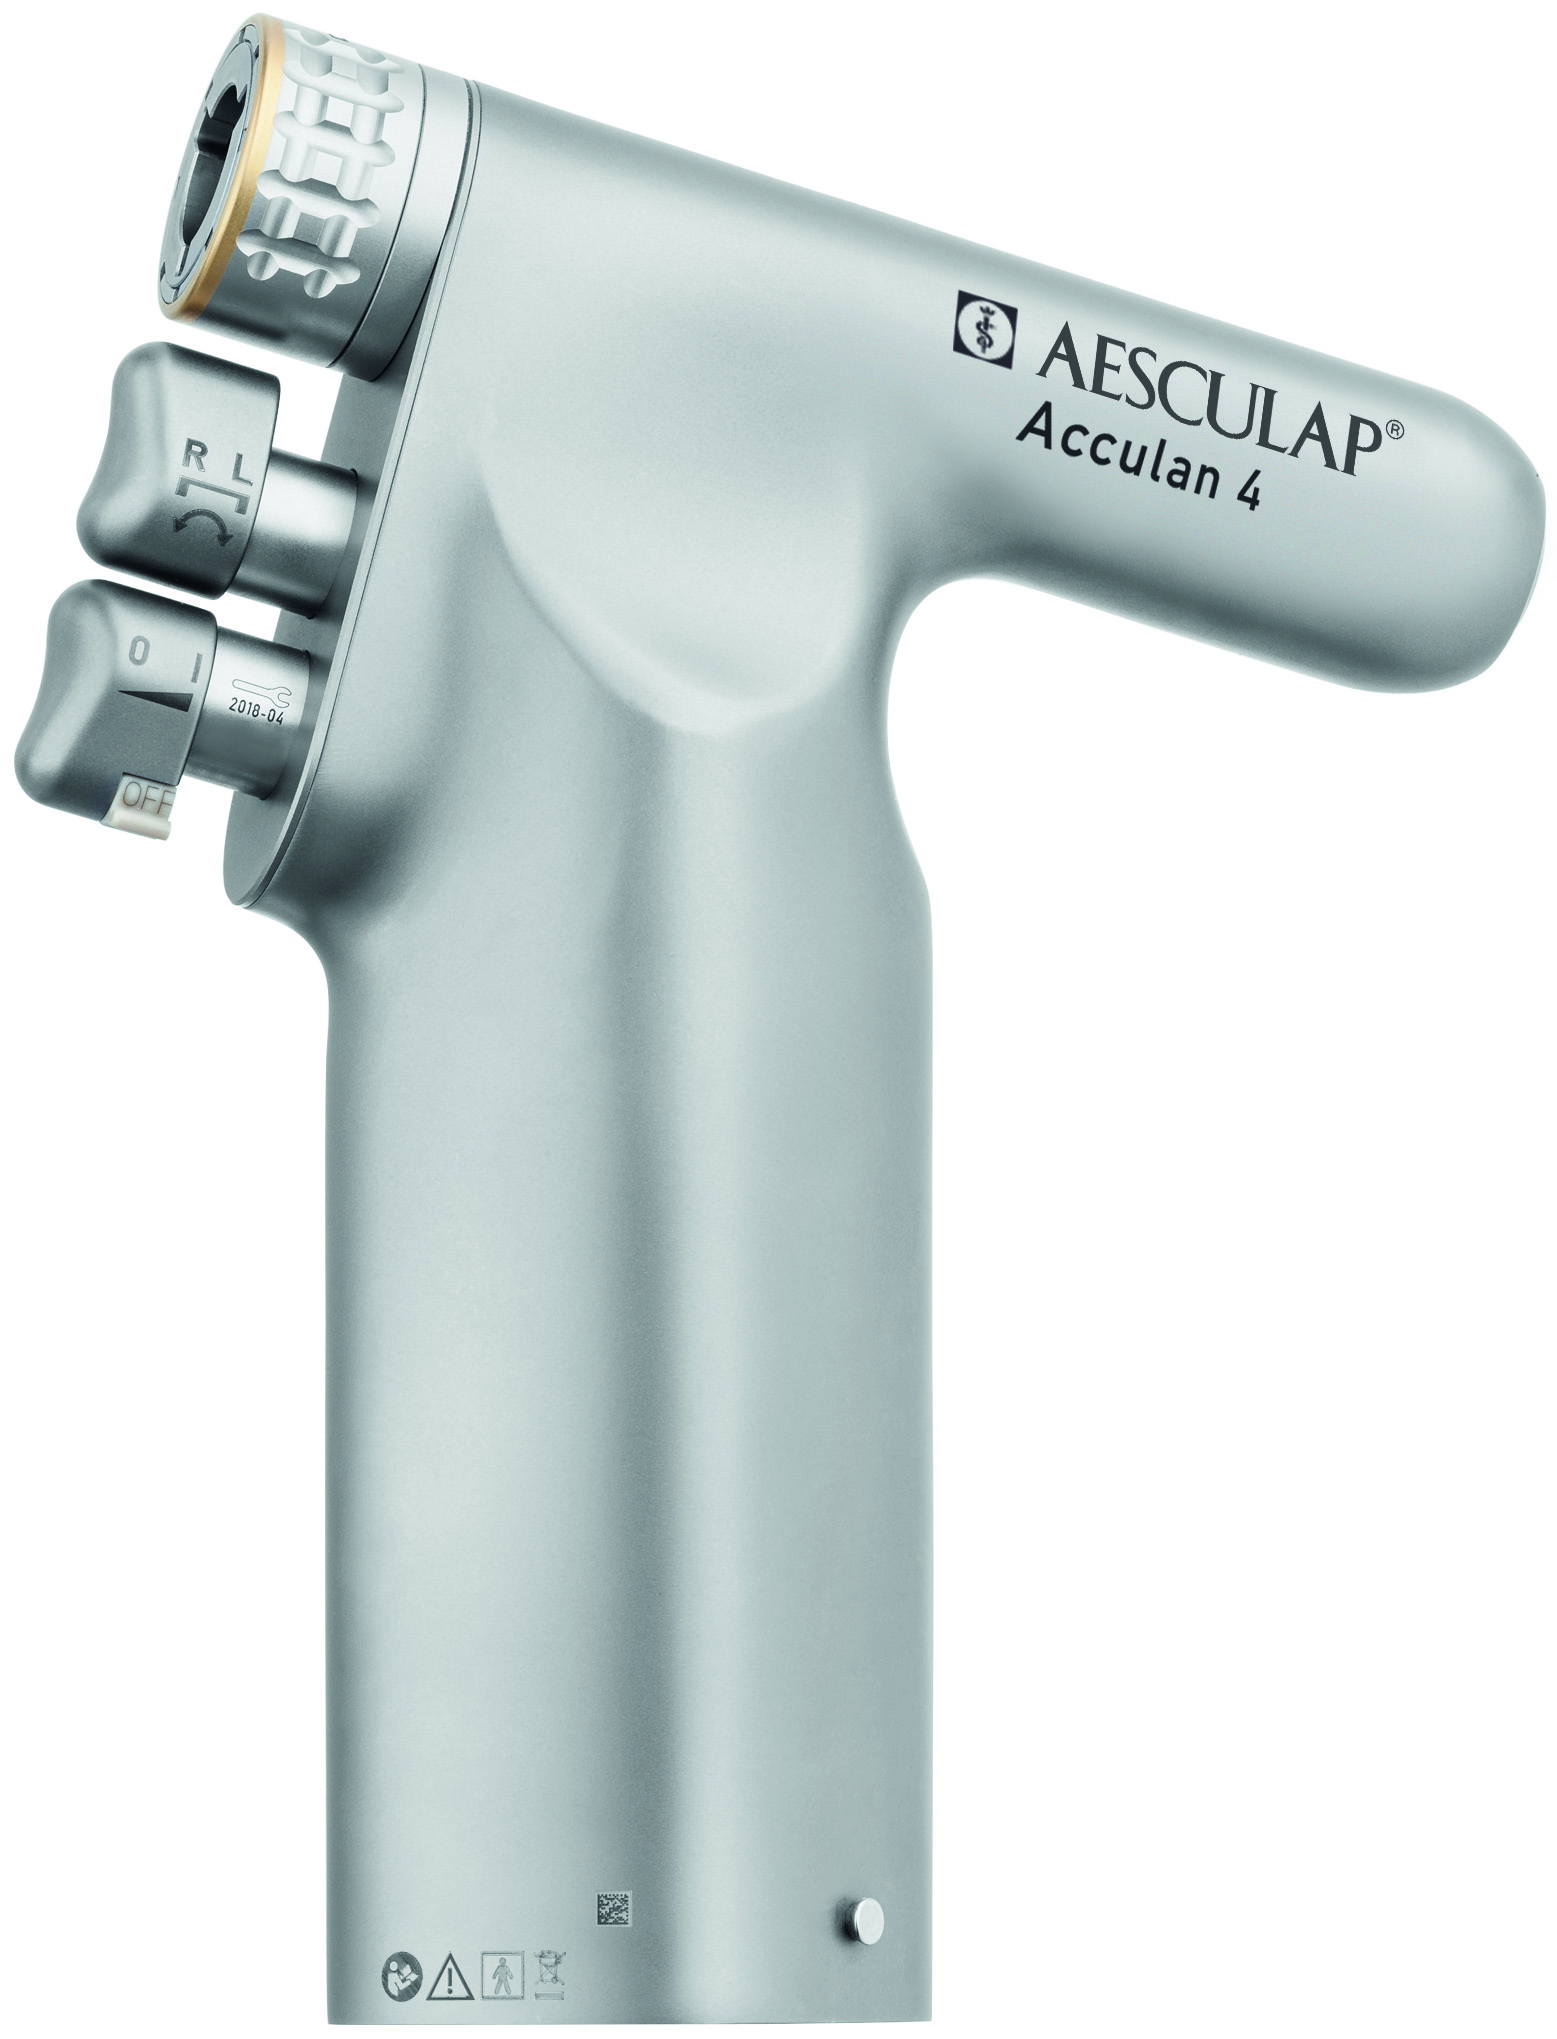 B. Braun Acculan 4 Surgical Power Tools